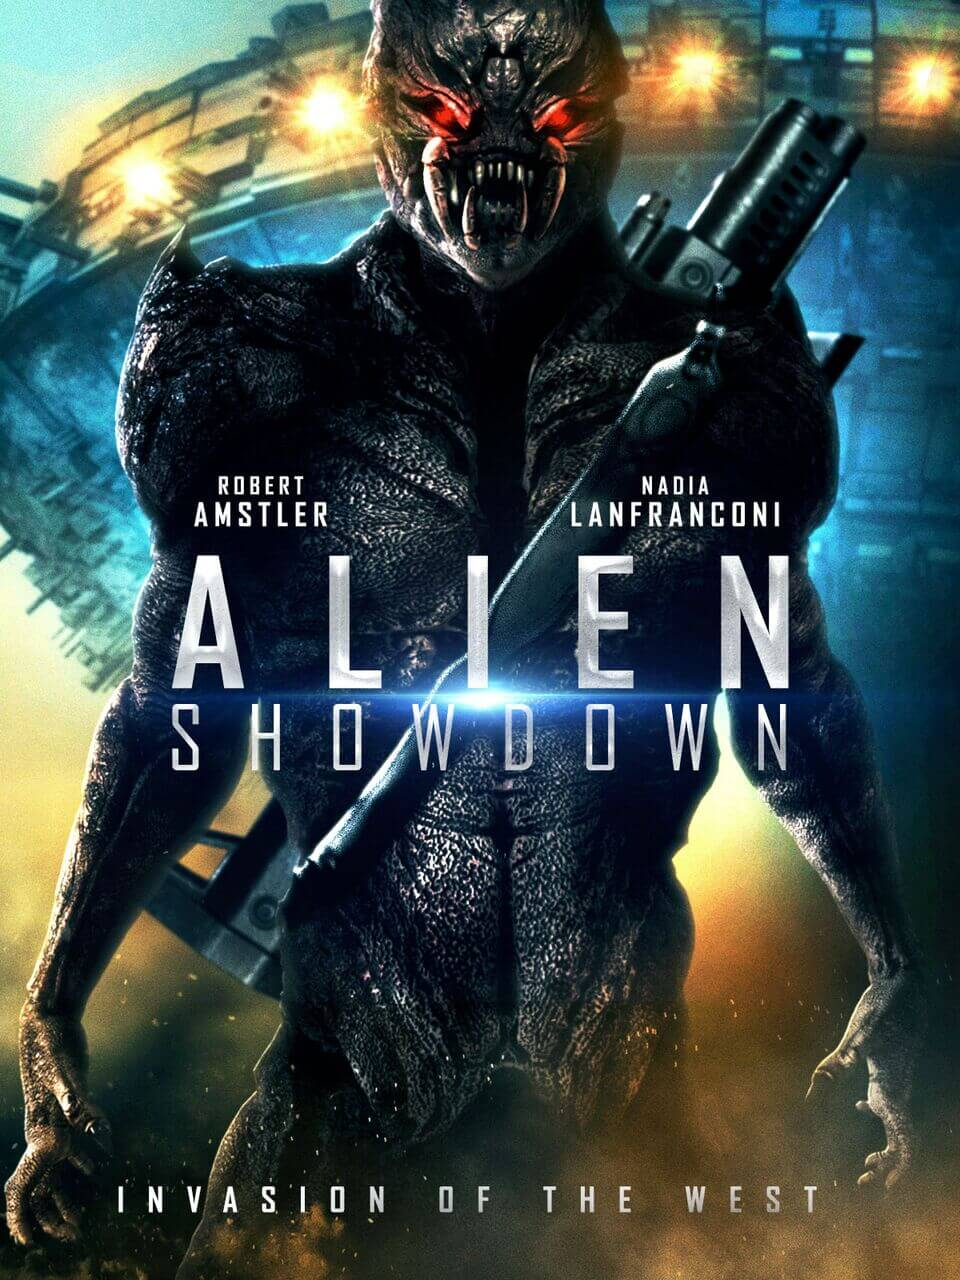 ALIEN SHOWDOWN